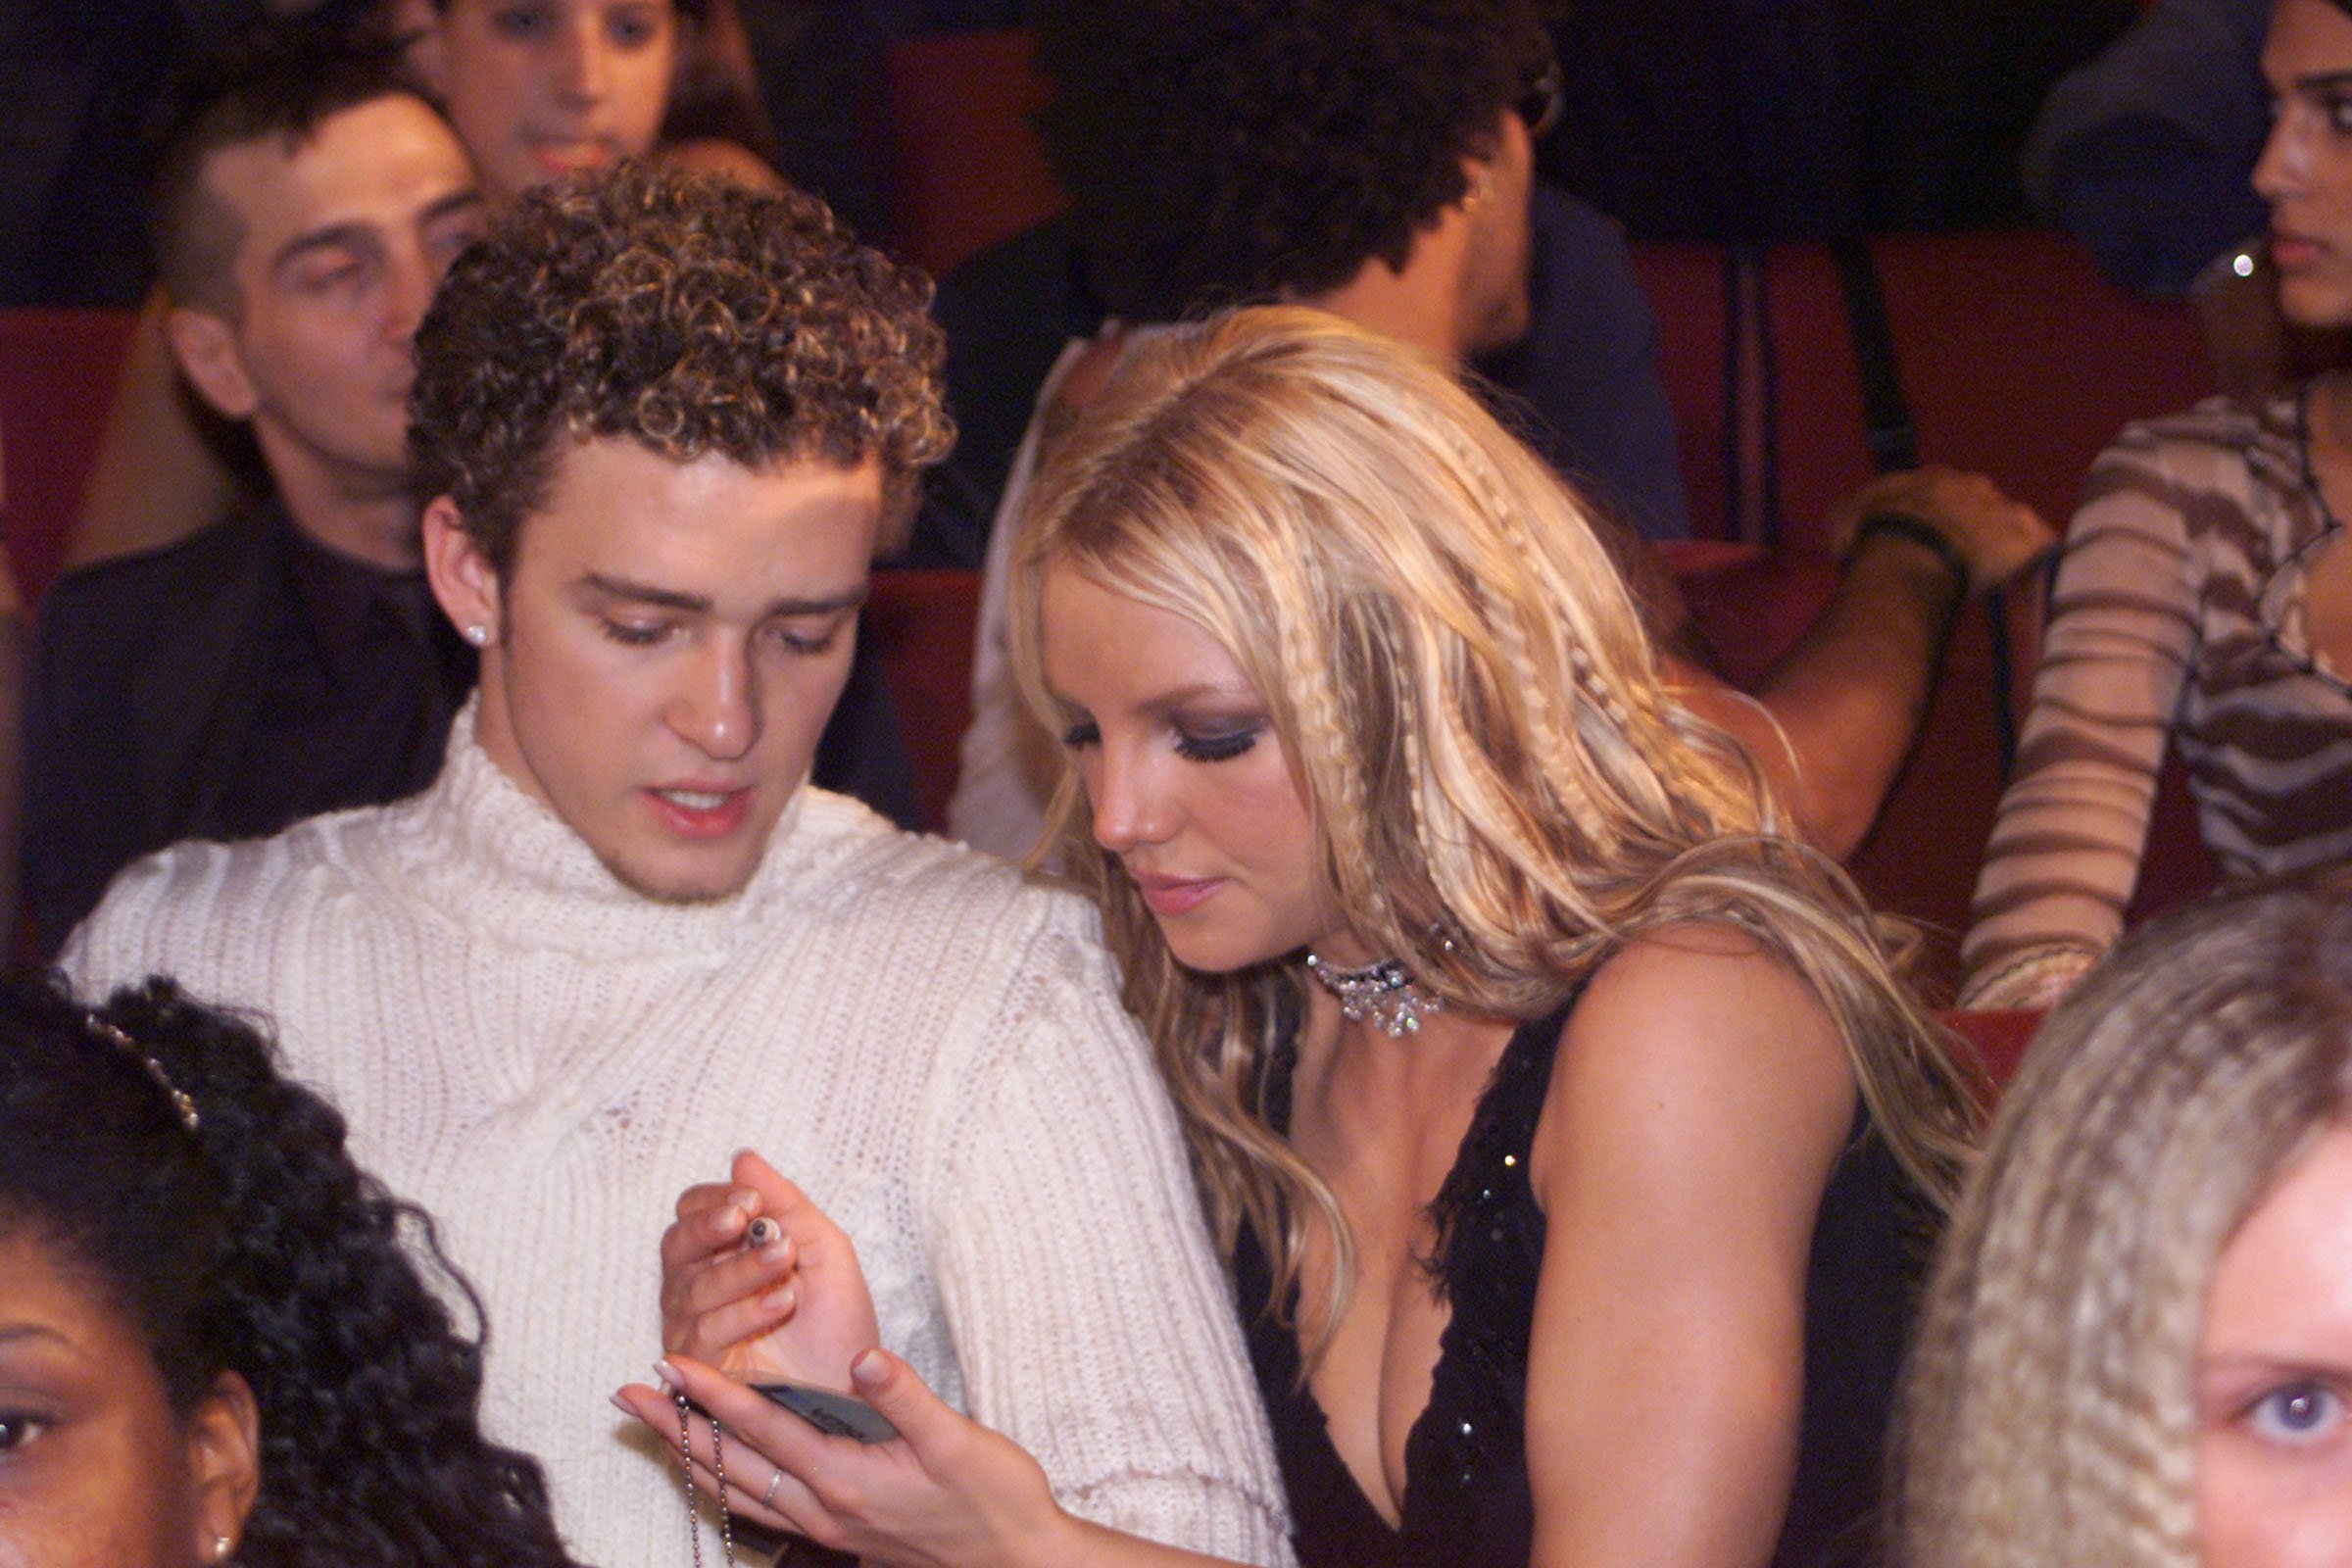 Image Source: Getty Images/Dave Hogan | Timberlake and Spears at the 2000 MTV Music Awards